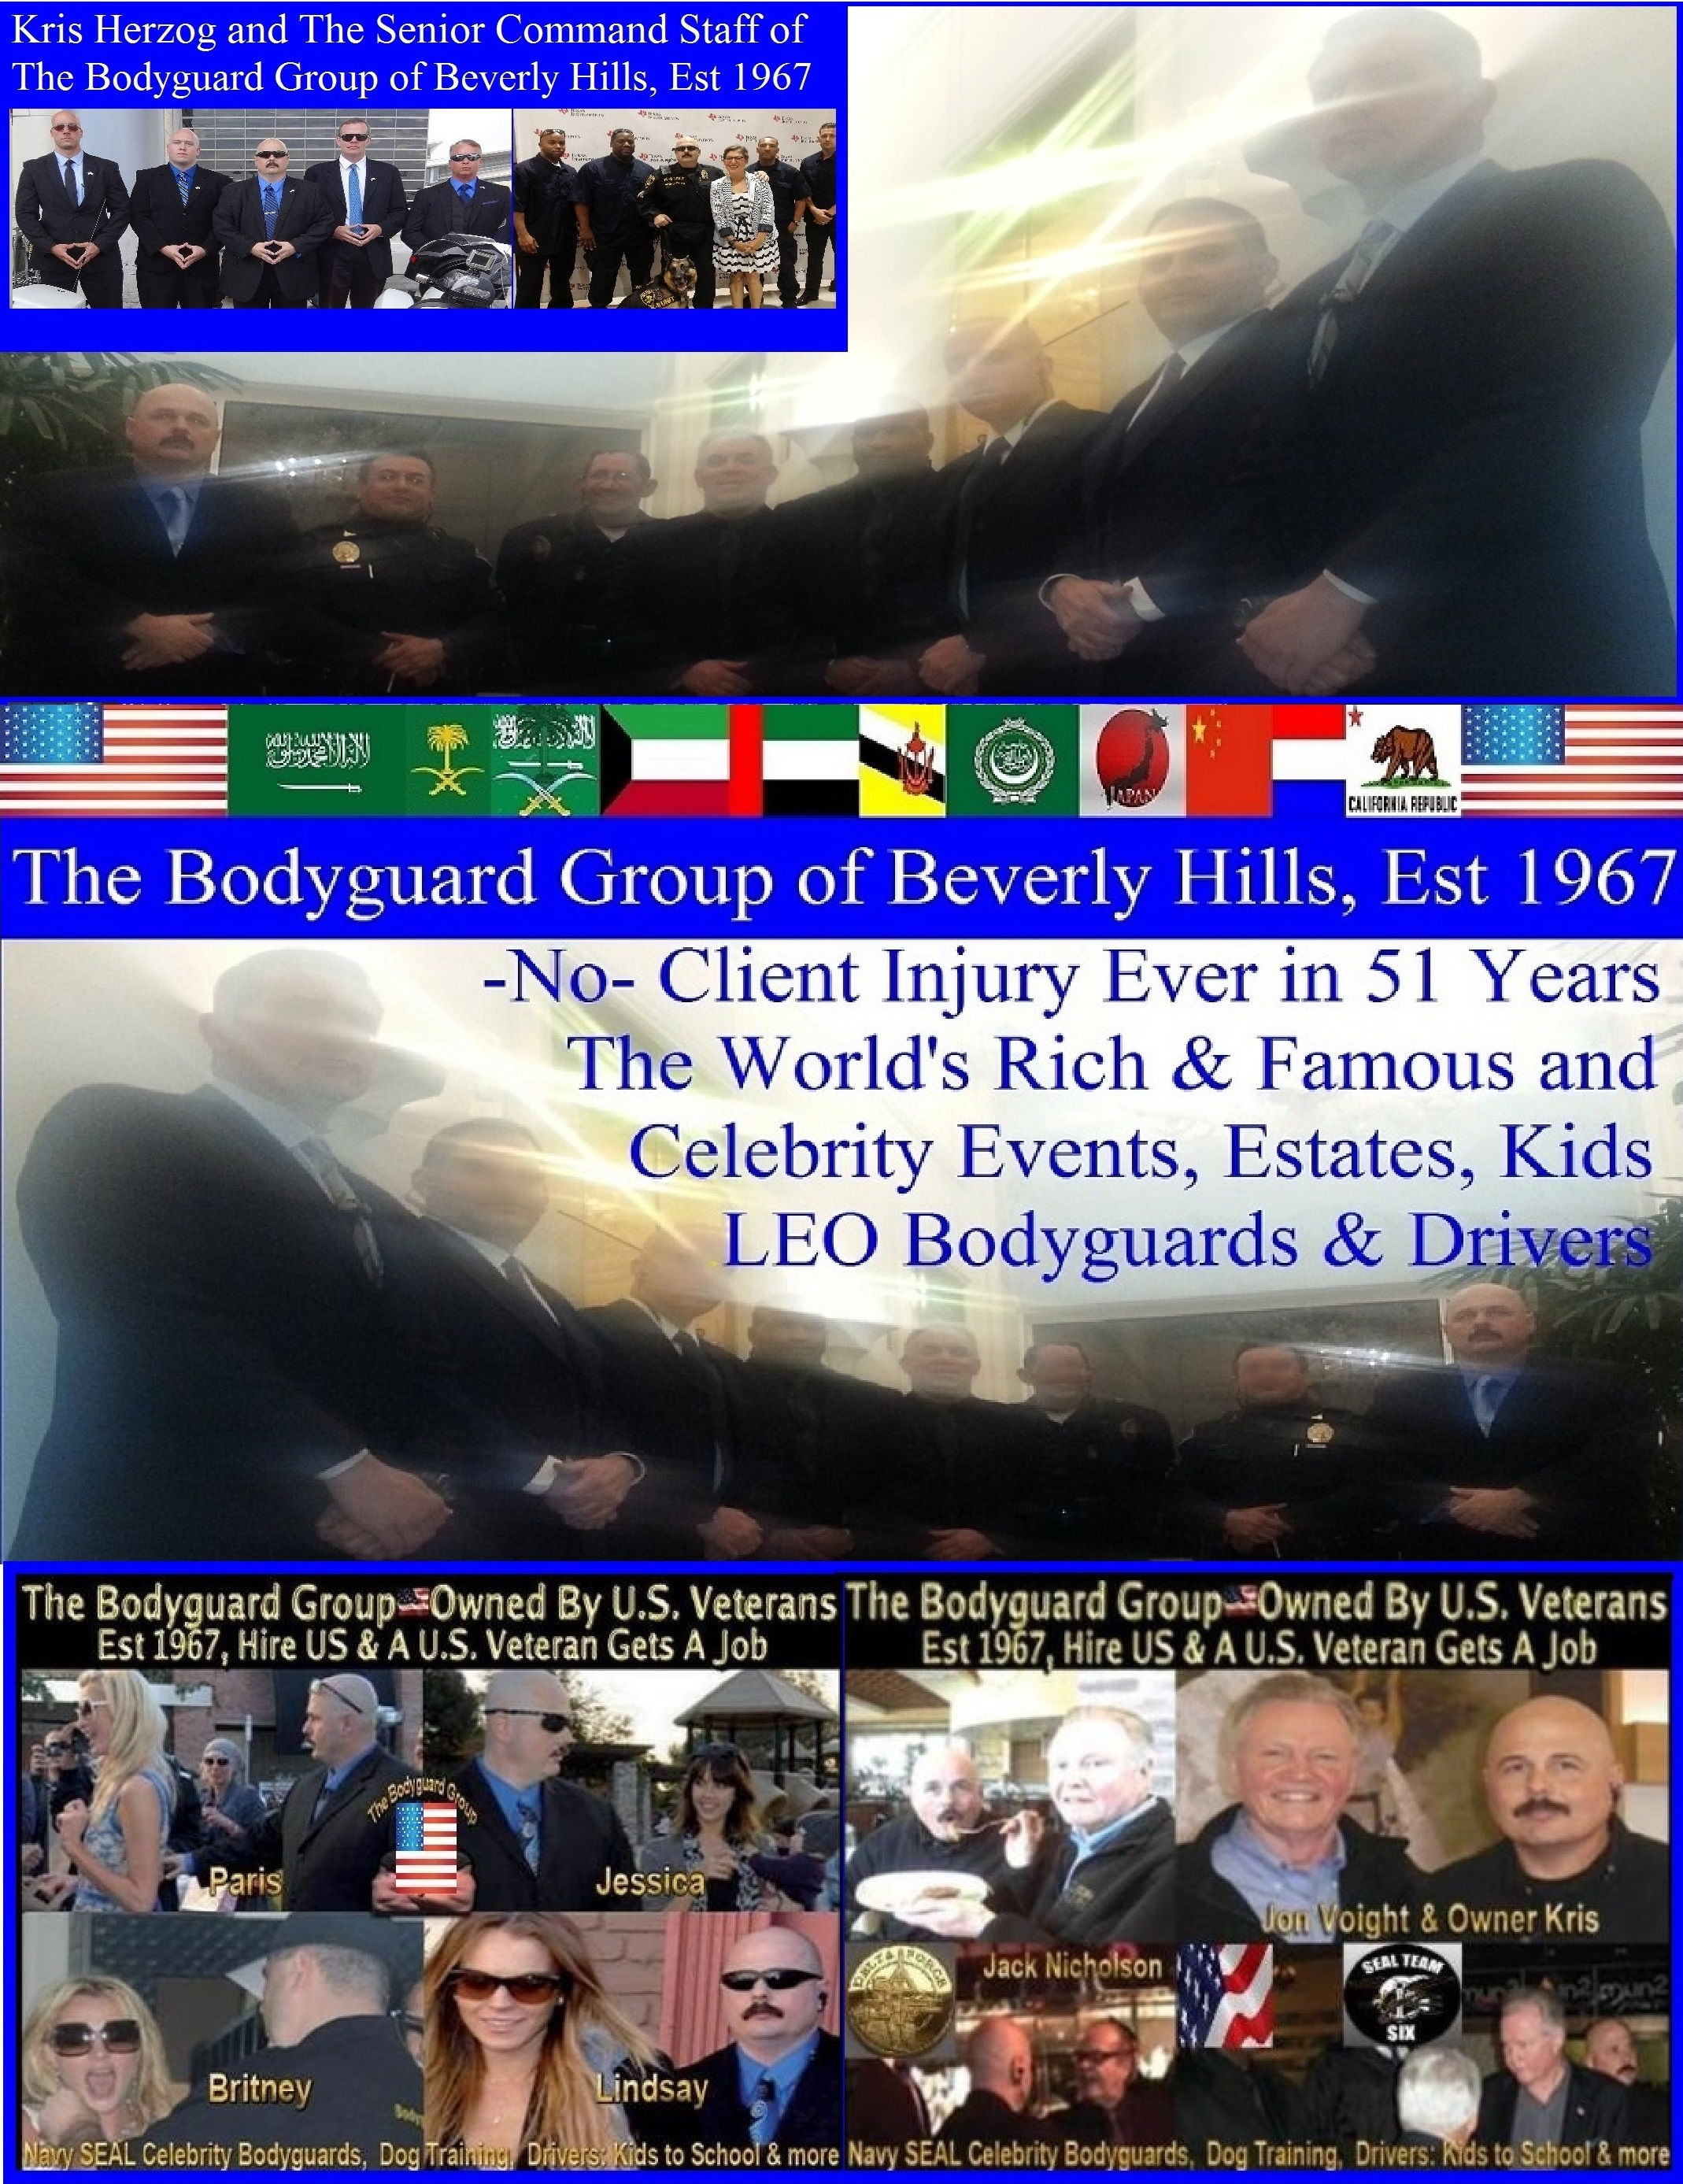 Kris Herzog, The Bodyguard Group of Beverly Hills, 90210, Los Angeles armed celebrity Beverly Hills bodyguards for hire, Bel Air security bodyguards